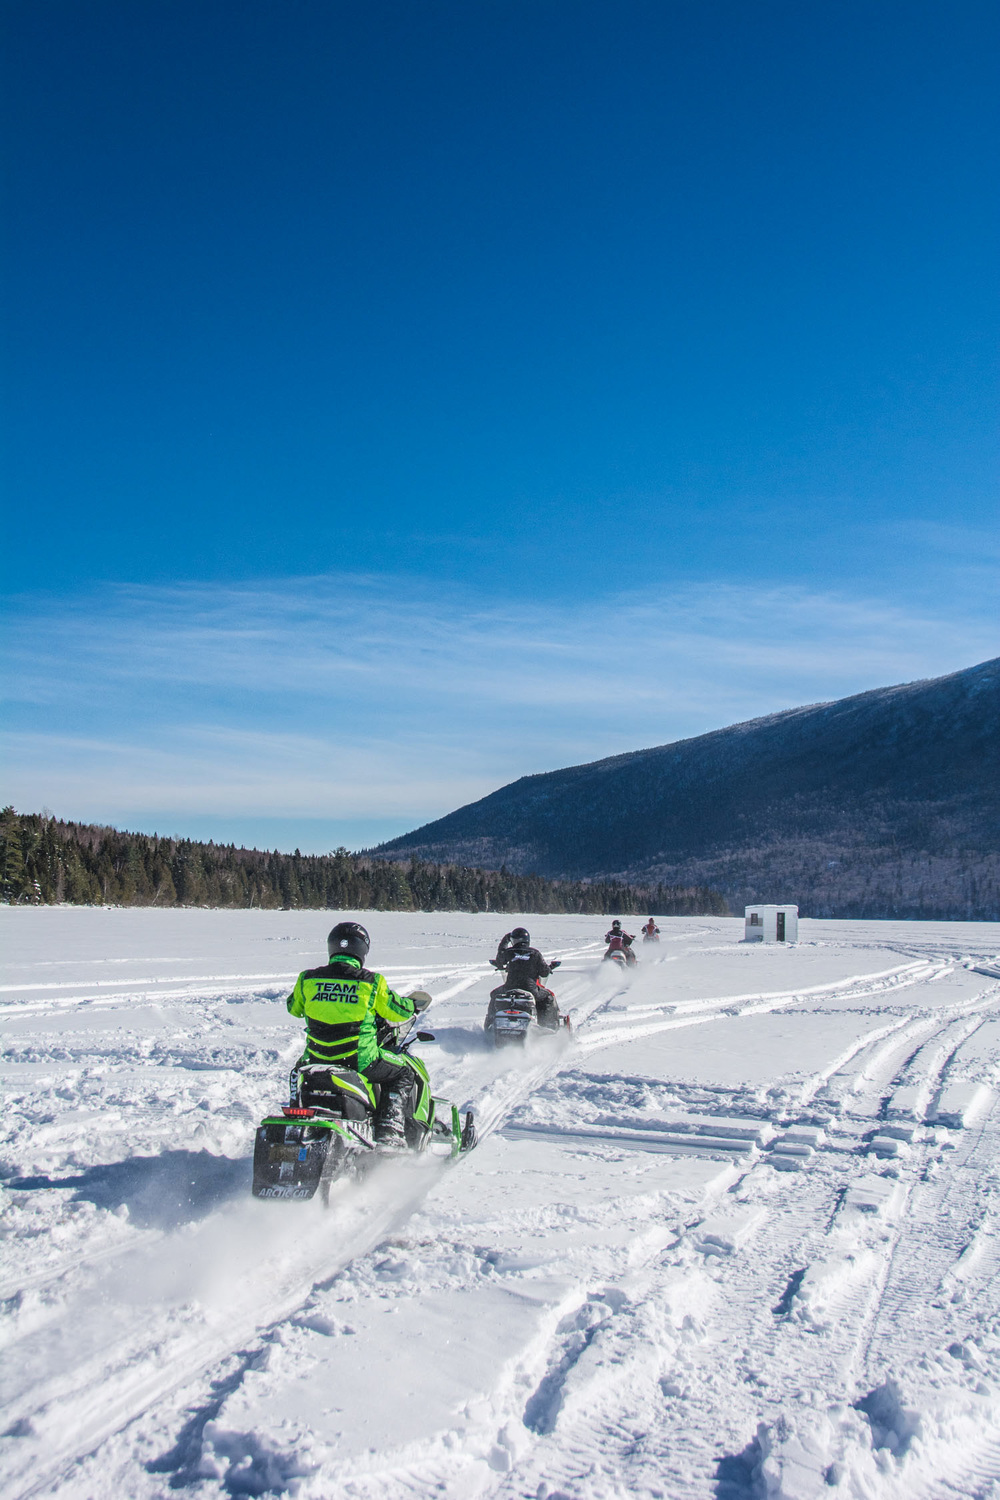 feb10-11 2015-Tourism New Brunswick-T4G Kick-winter 2015-New Brunswick Great Northern Odyssey-snowmobile trip-Mount Carleton-NB-photo by Aaron McKenzie Fraser-www.amfraser.com-_AMF4807.jpg